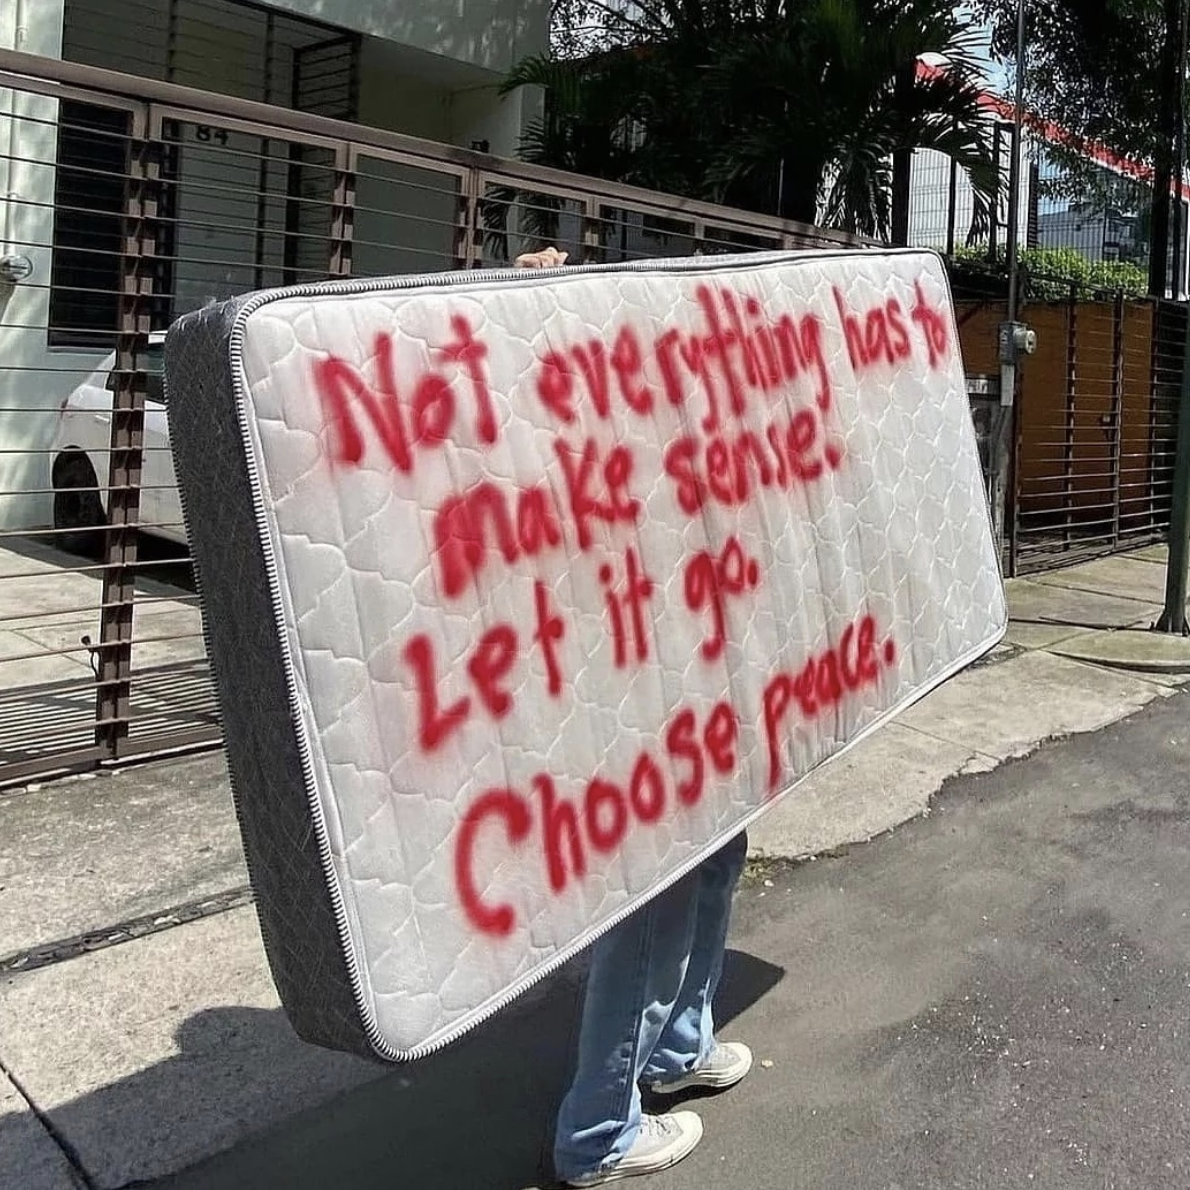 [Image] Not everything has to make sense. Let it go. Choose peace.